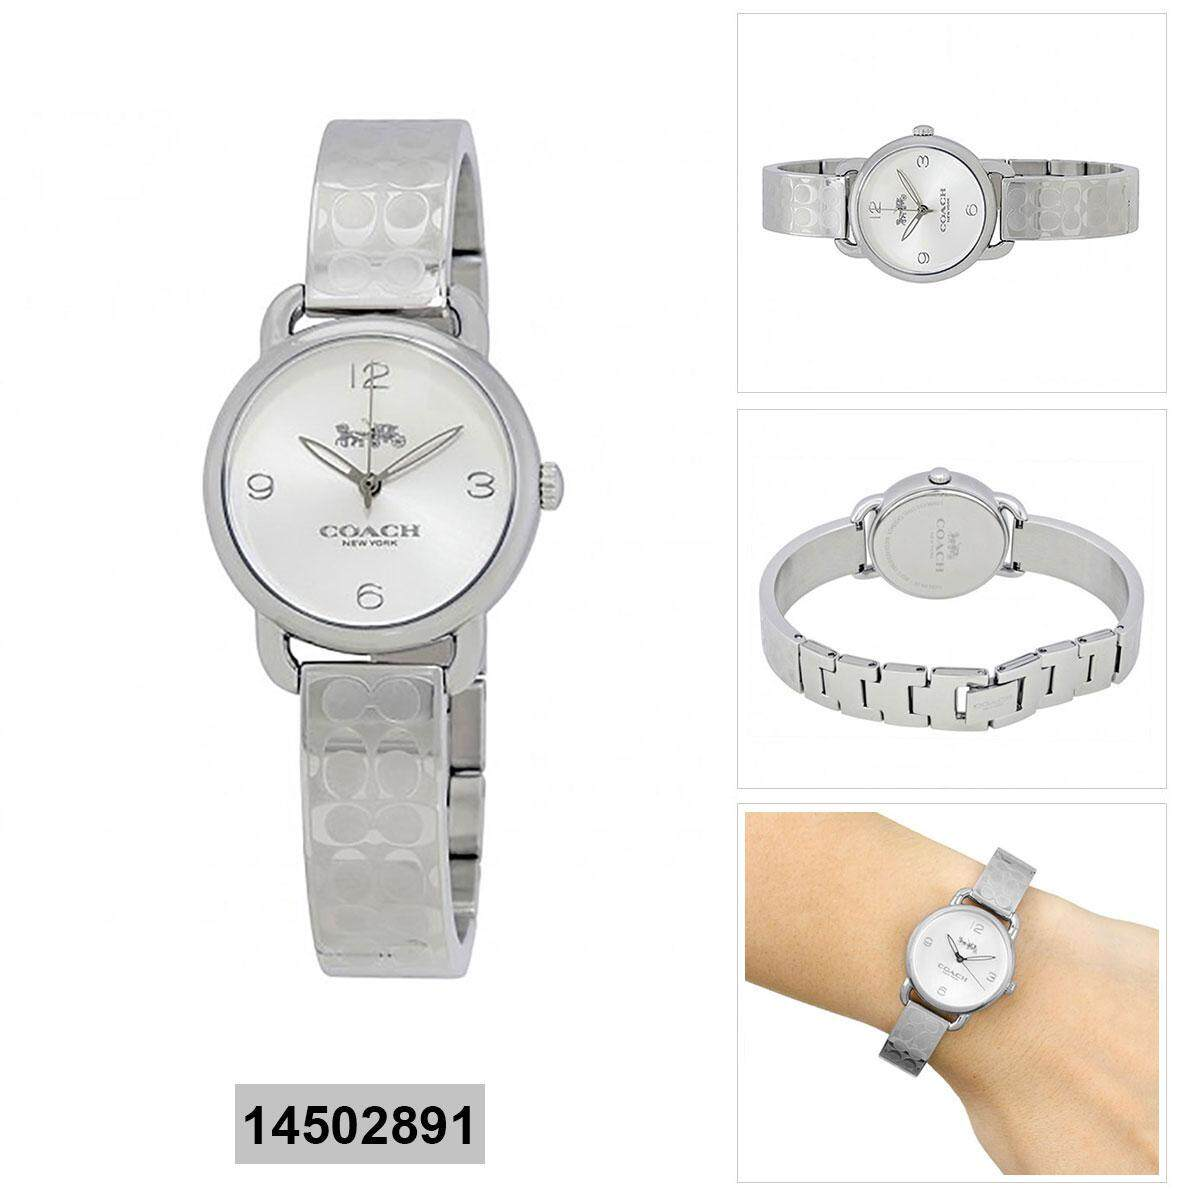 Coach Coach Delancey Silver Stainless-Steel Case Stainless-Steel Bracelet Ladies 14502891 Malaysia